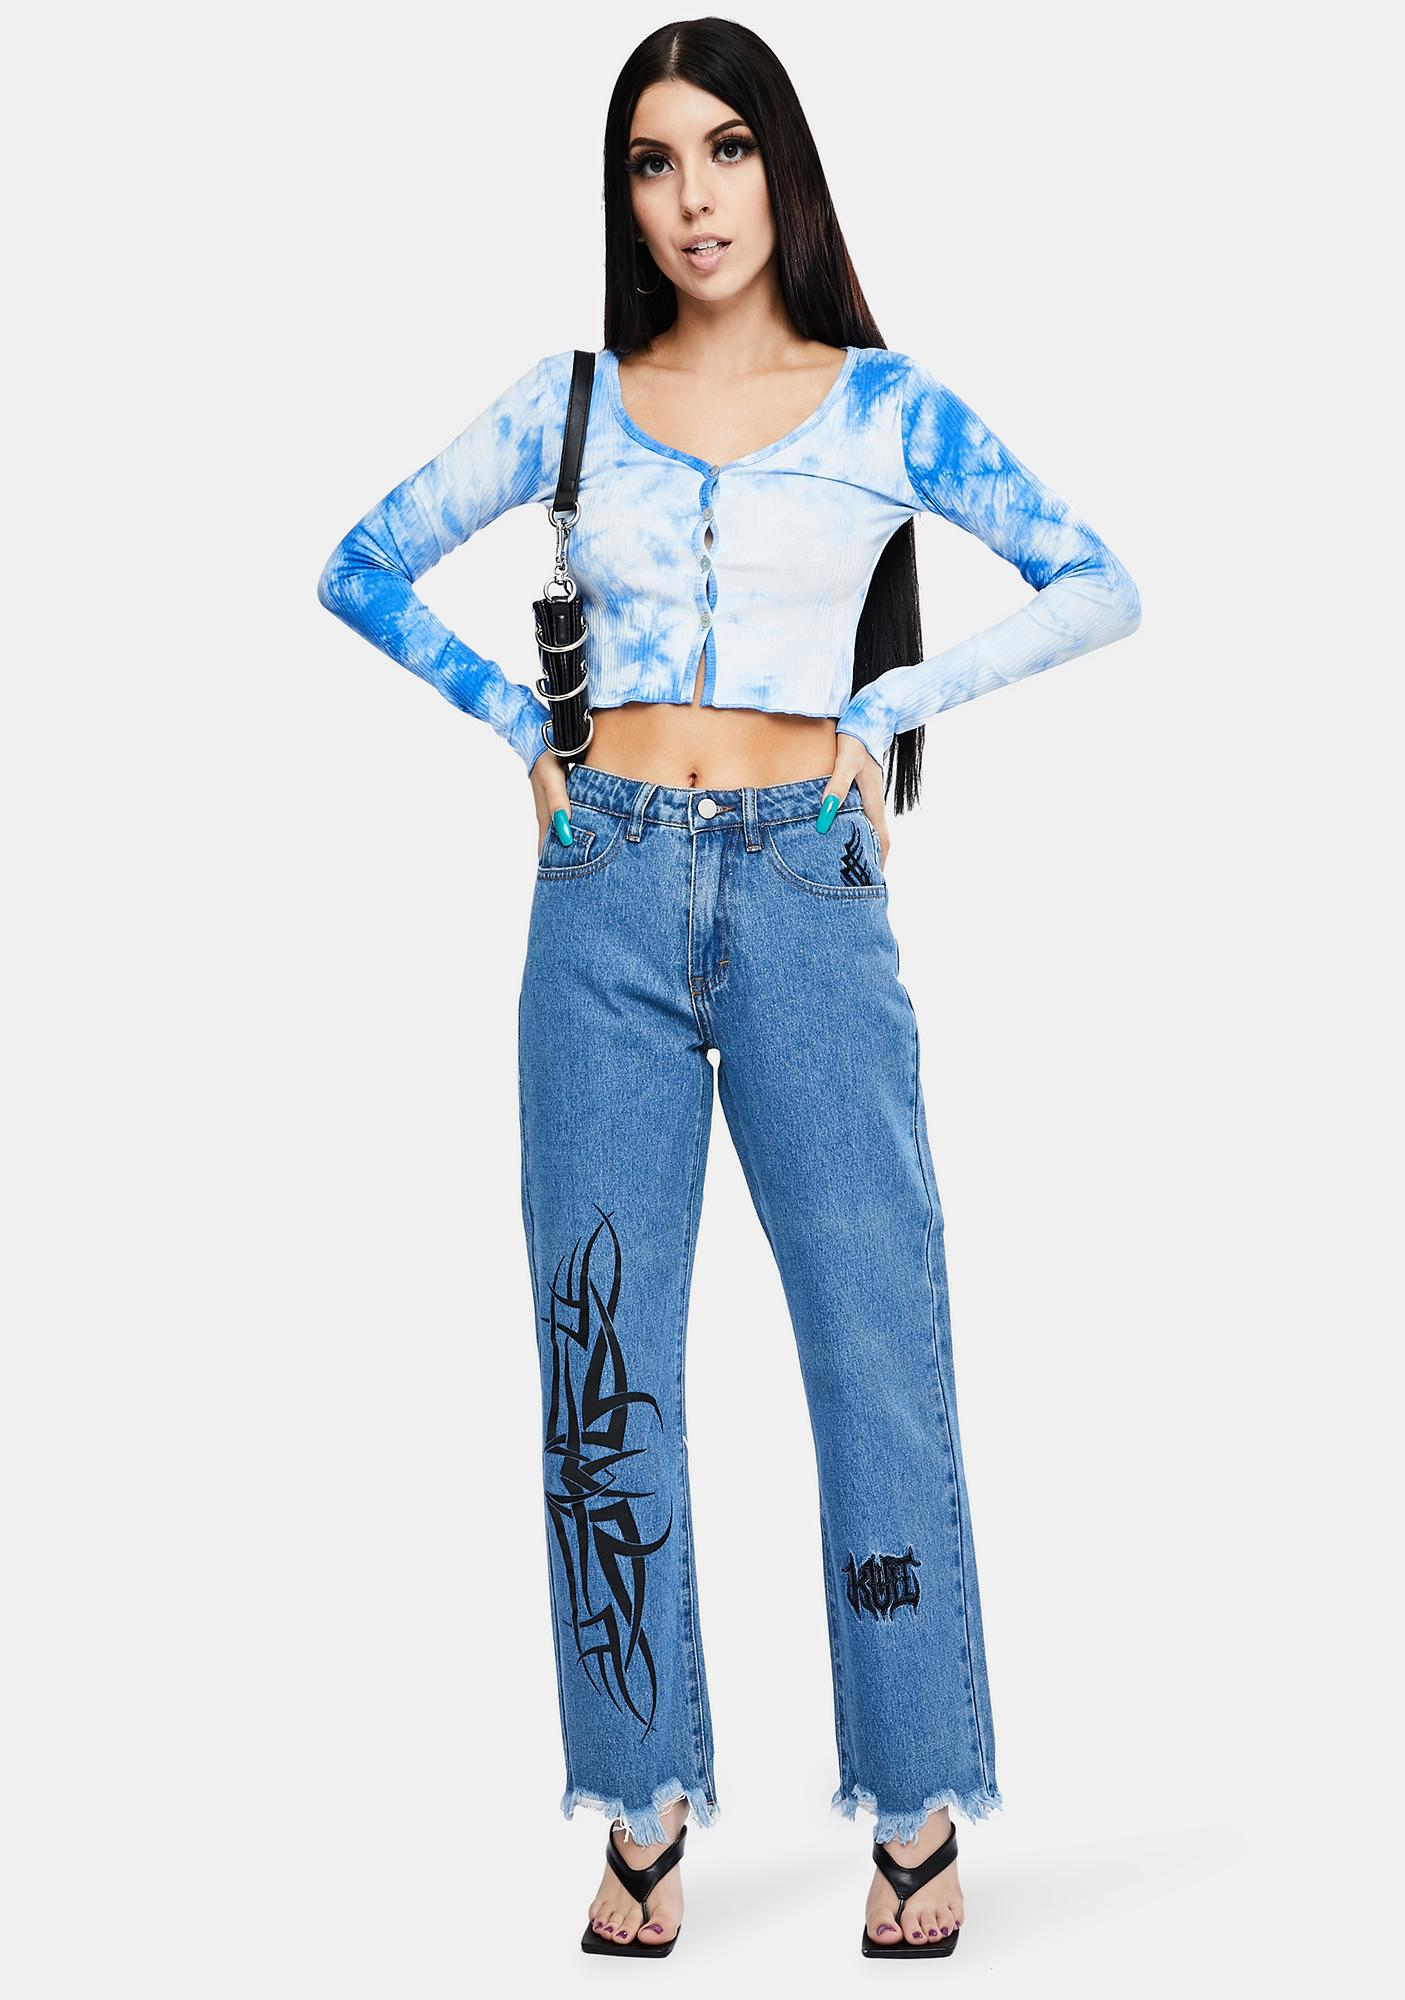 Sky Be The Free Tie Dye Button Up Crop Top